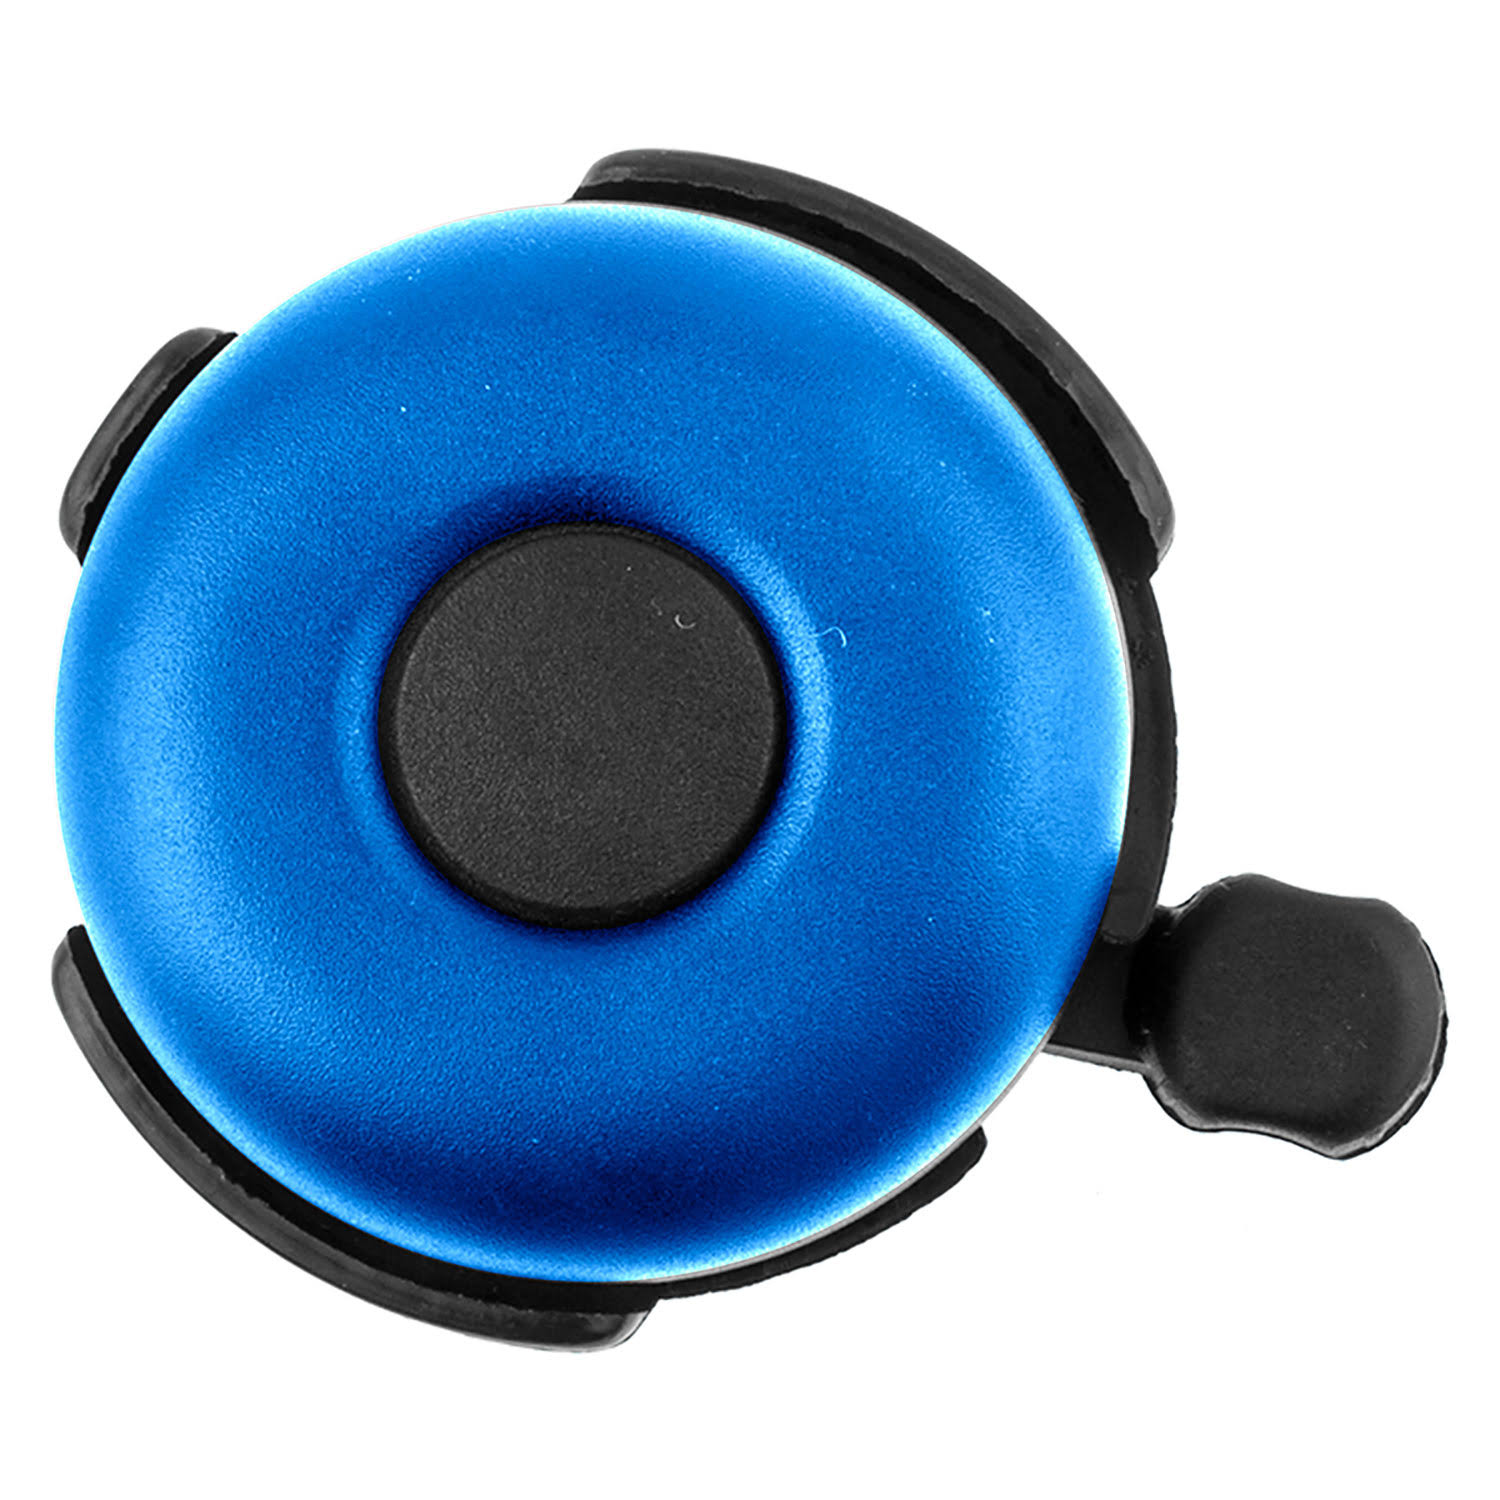 Sunlite Ringer Alloy Bicycle Bell - Blue, 53mm